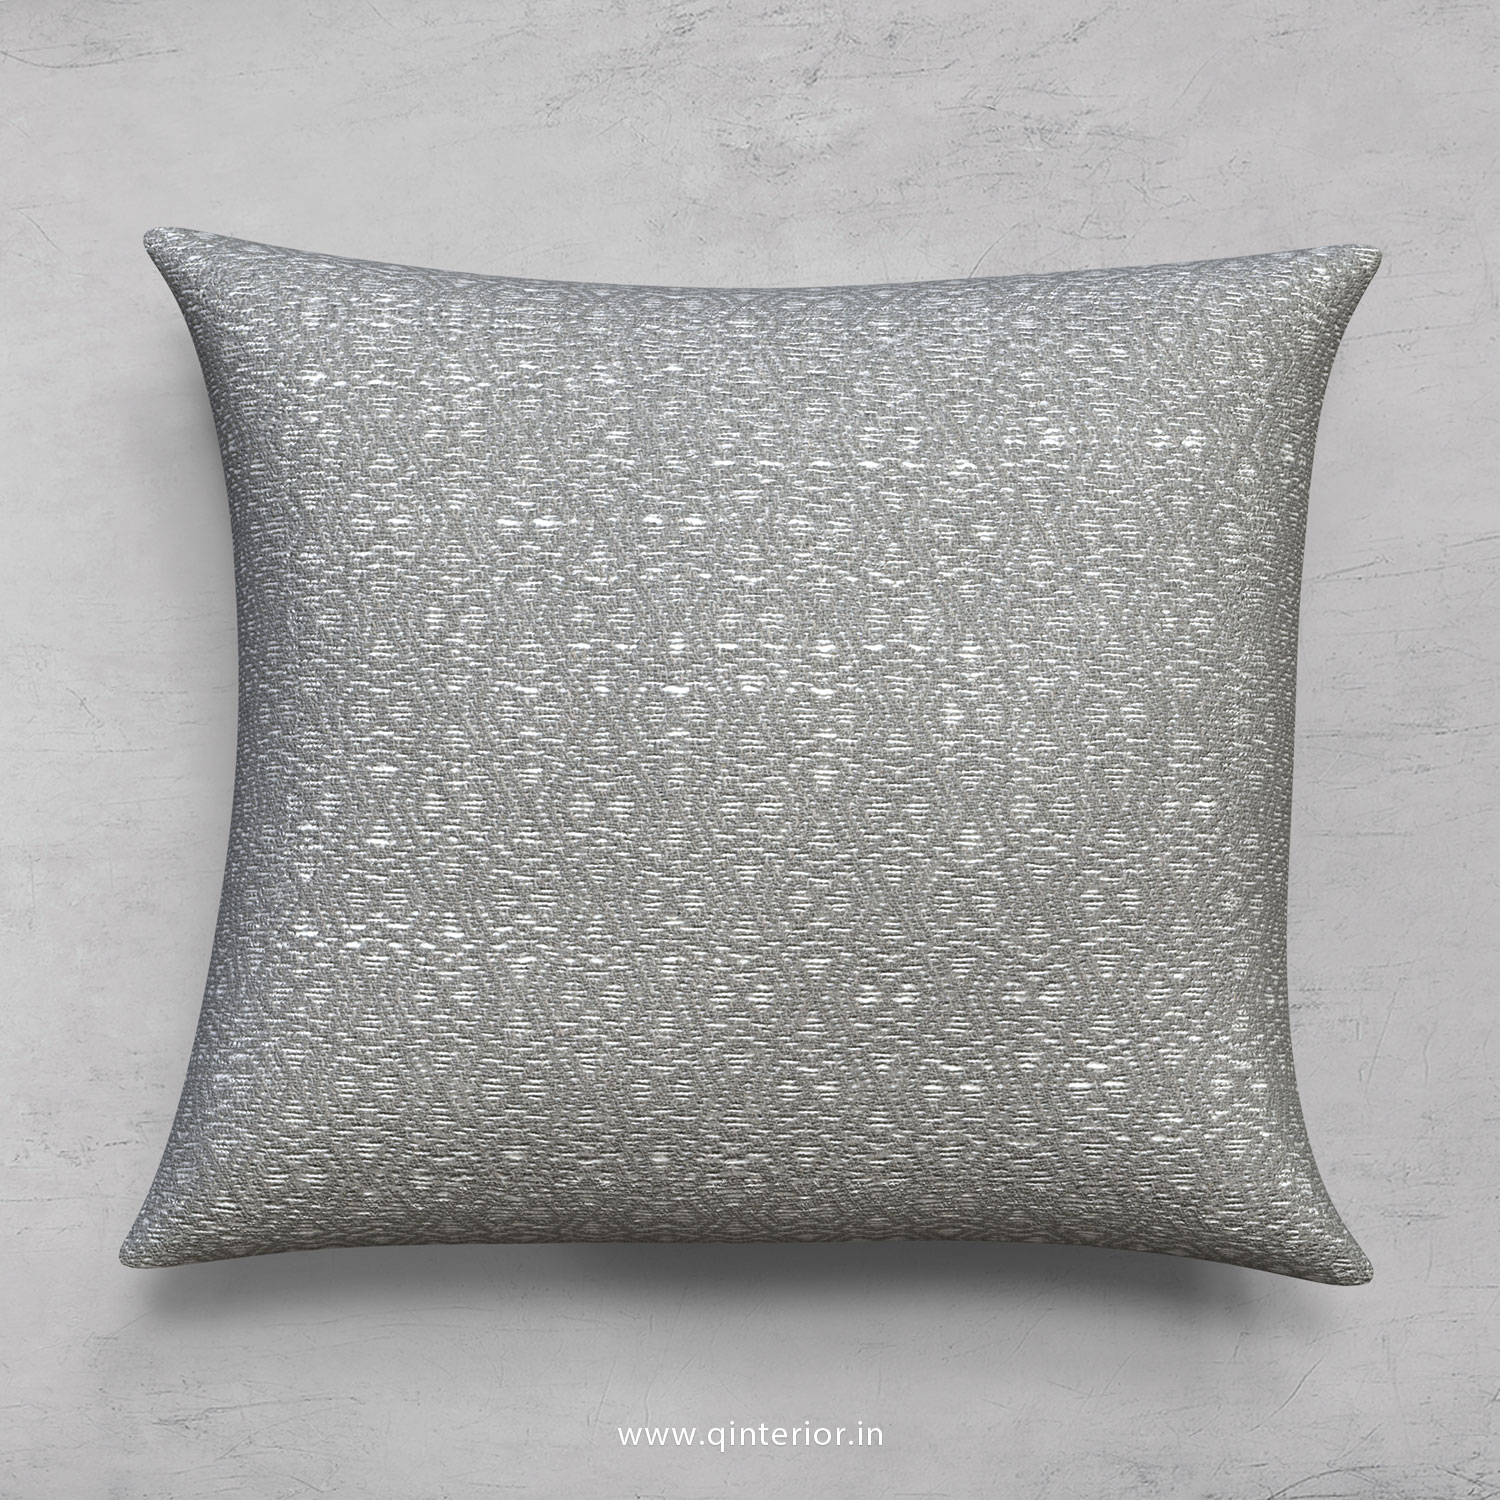 Grey Bargello Cushion With Cushion Cover - CUS001 BG